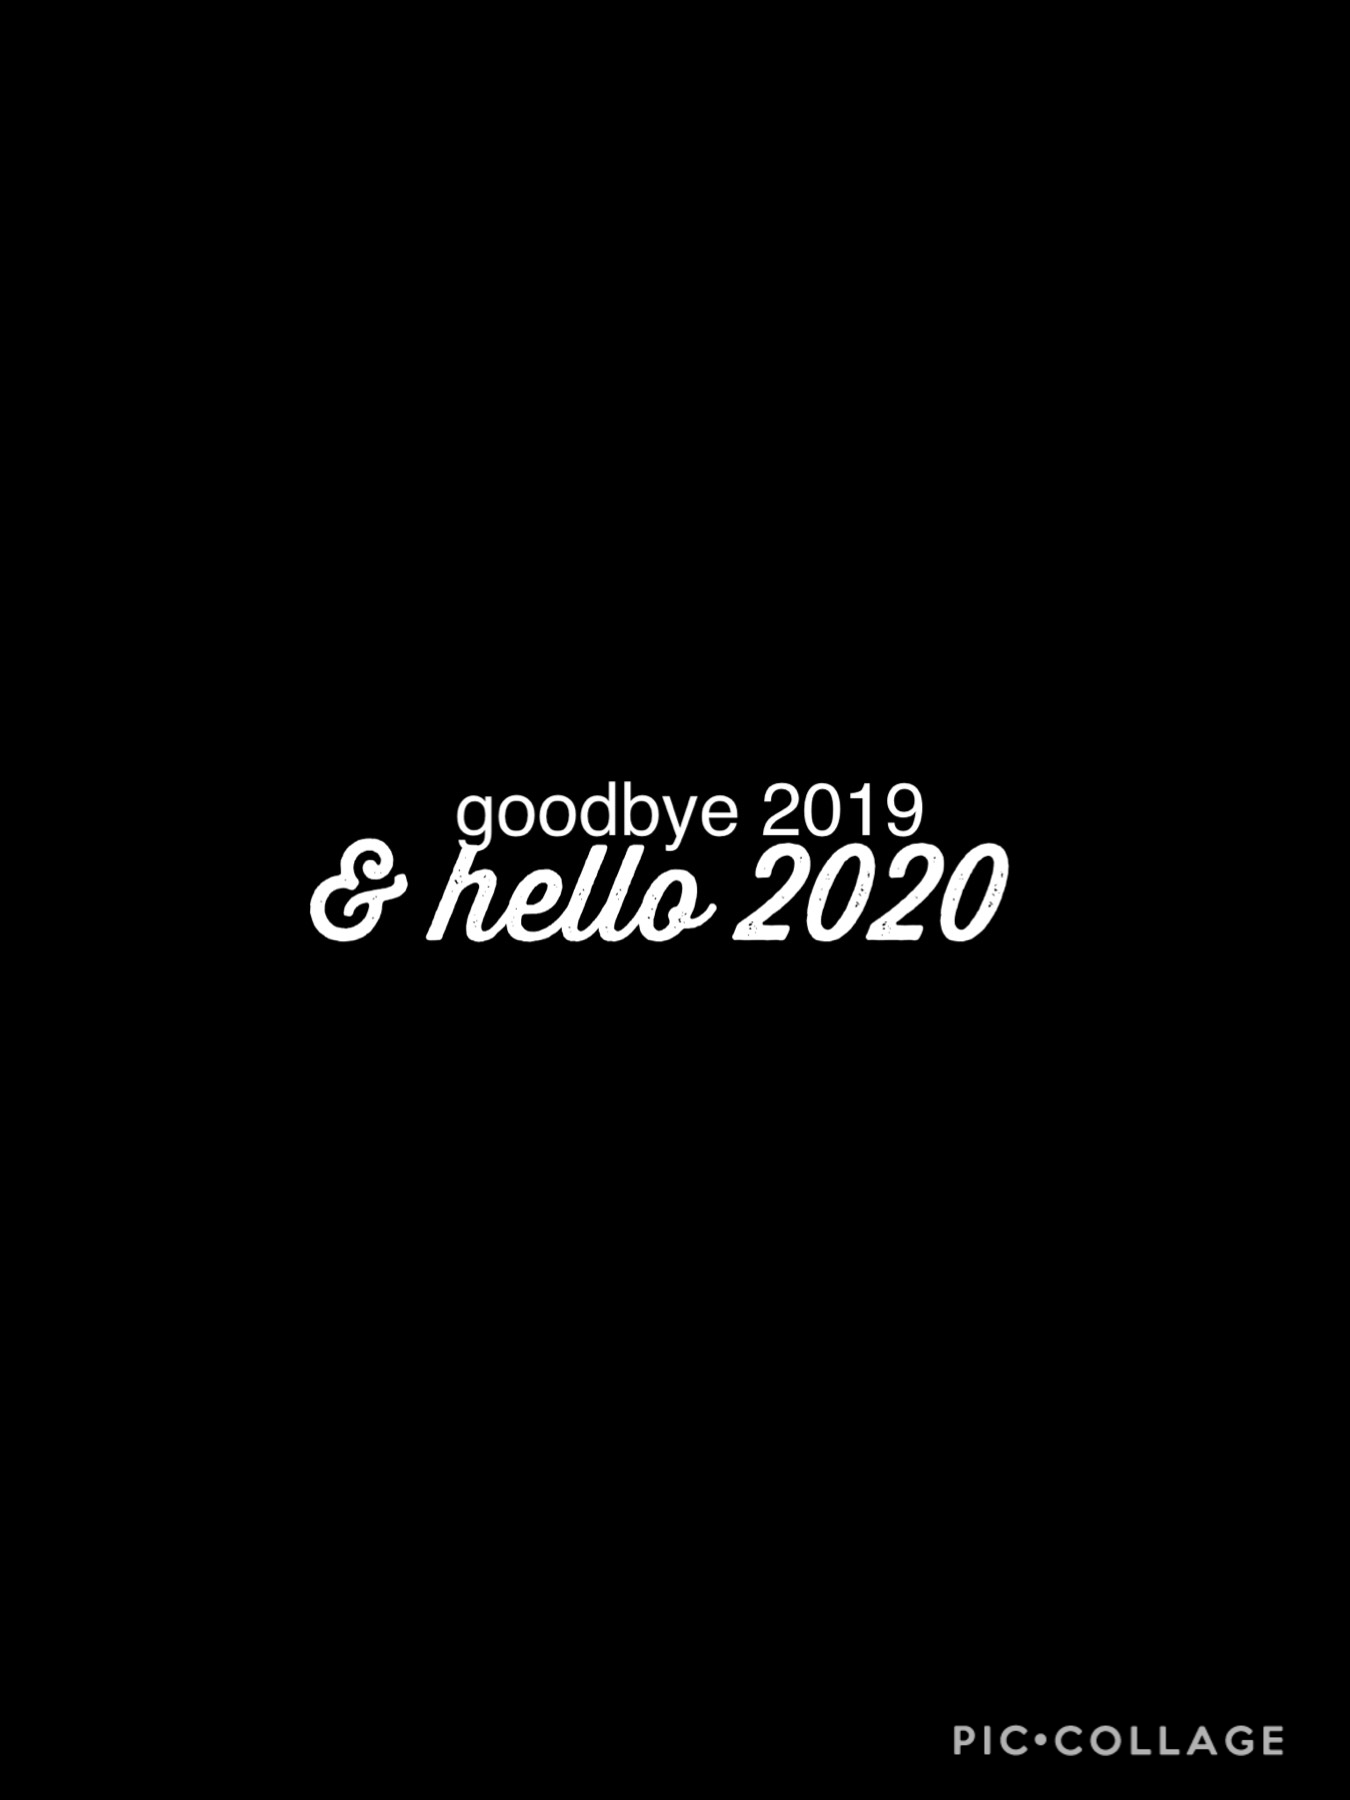 2020 !!! it's a pretty late post but glad it's 2020 & i'm hoping for a better year ⚡️ 2020 is already kind of rough but hopefully it'll get better:) also guys please DONATE for the wildfires in Australia !! OVER 500 MILLION ANIMALS ARE DEAD — THATS 200 MI